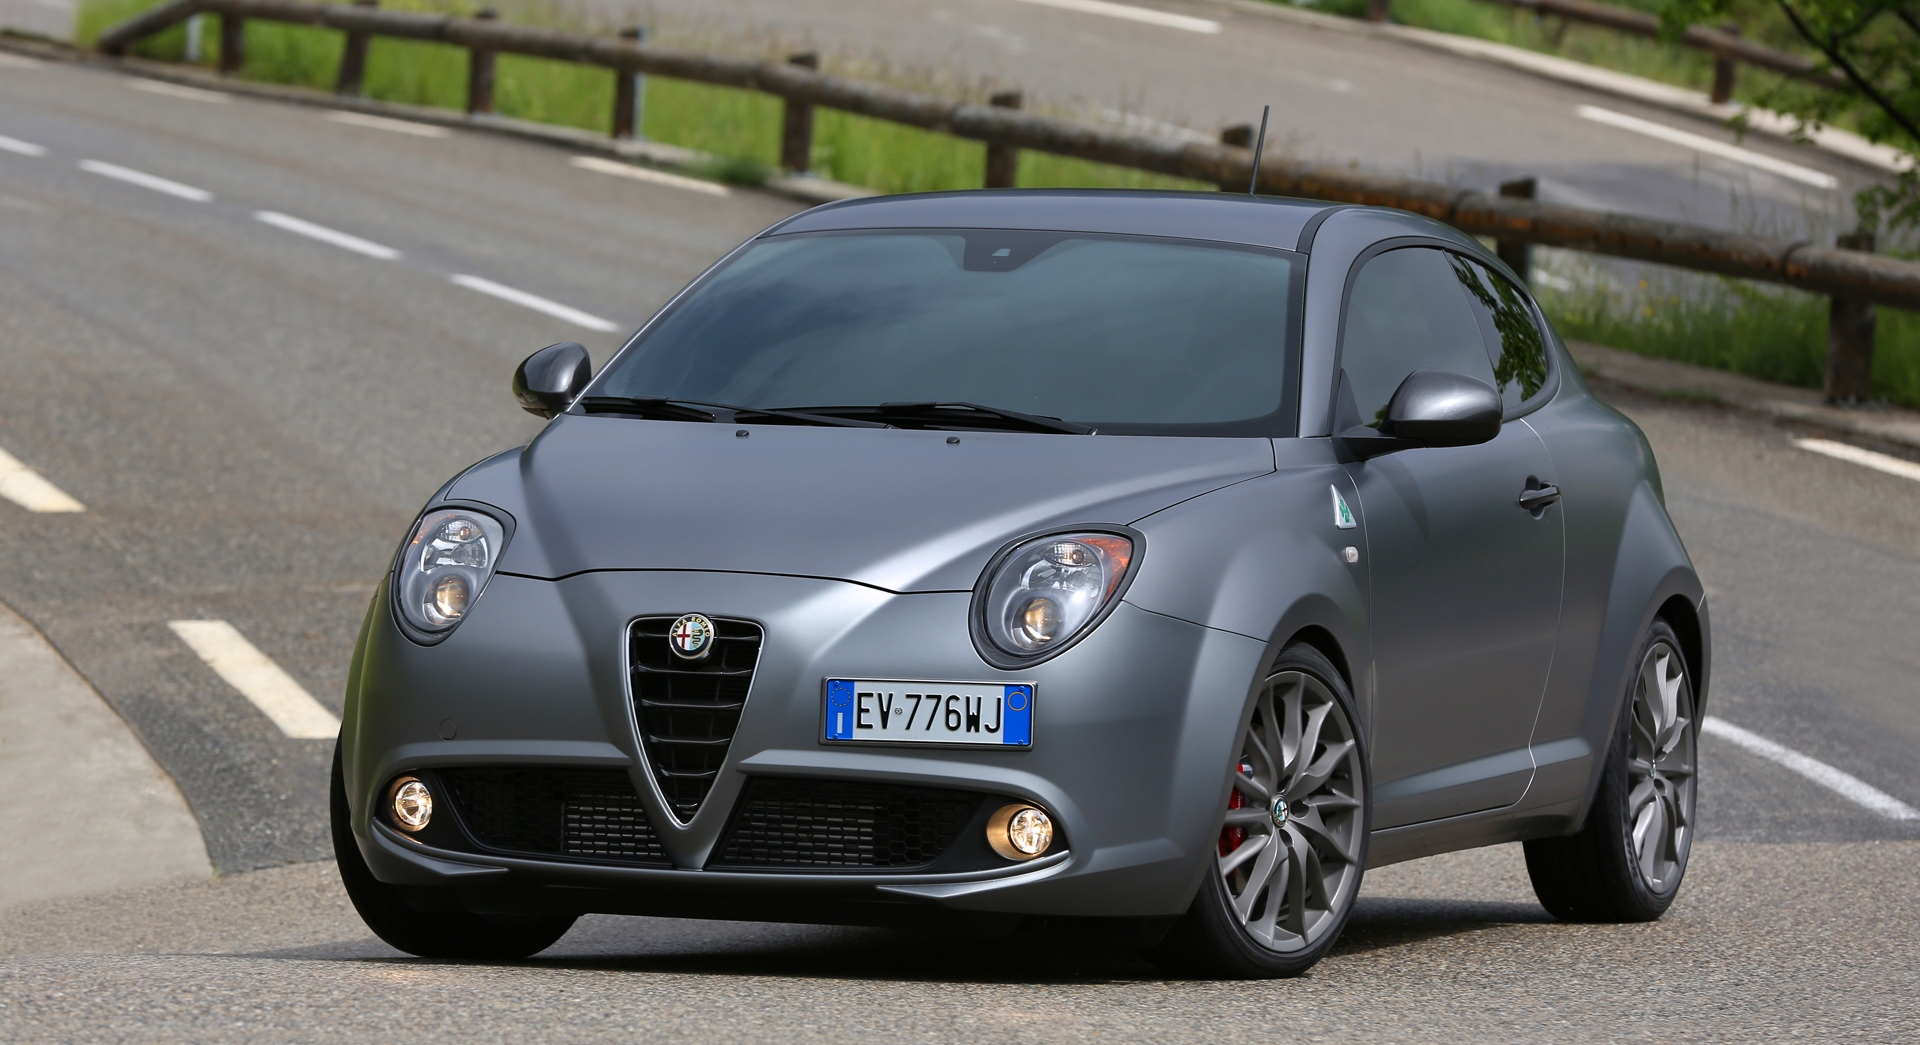 alfa romeo mito wallpaper ride hd desktop wallpapers 4k hd. Black Bedroom Furniture Sets. Home Design Ideas